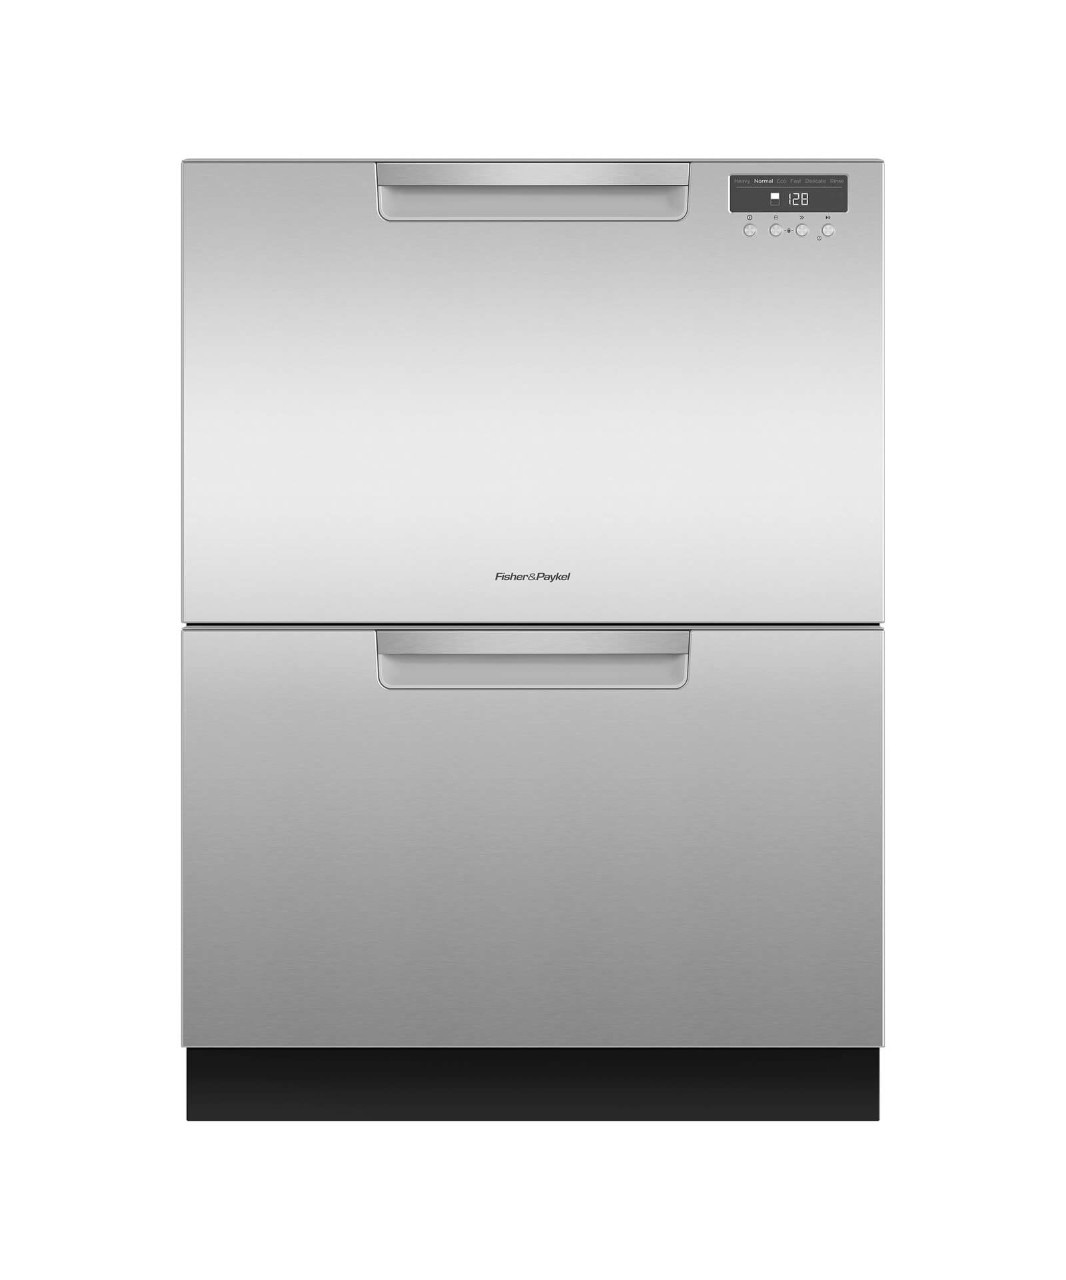 Dishwasher Drawers Vs Standard Fisher Paykel Dishdrawers Vs Standard Dishwashers